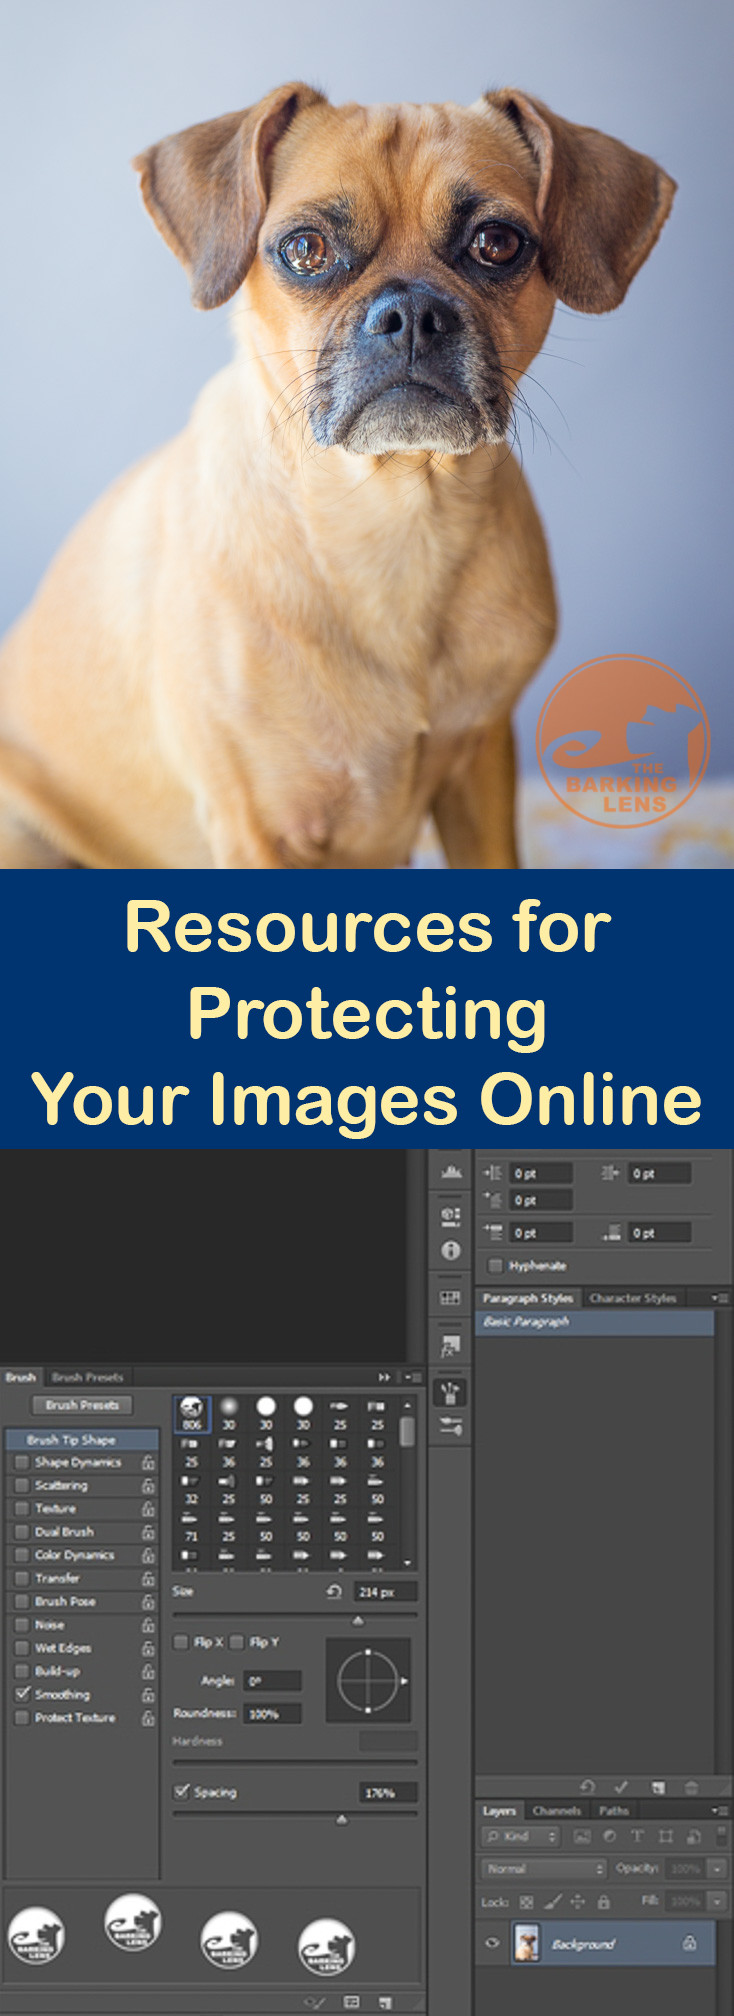 Resources for Protecting Your Images Online